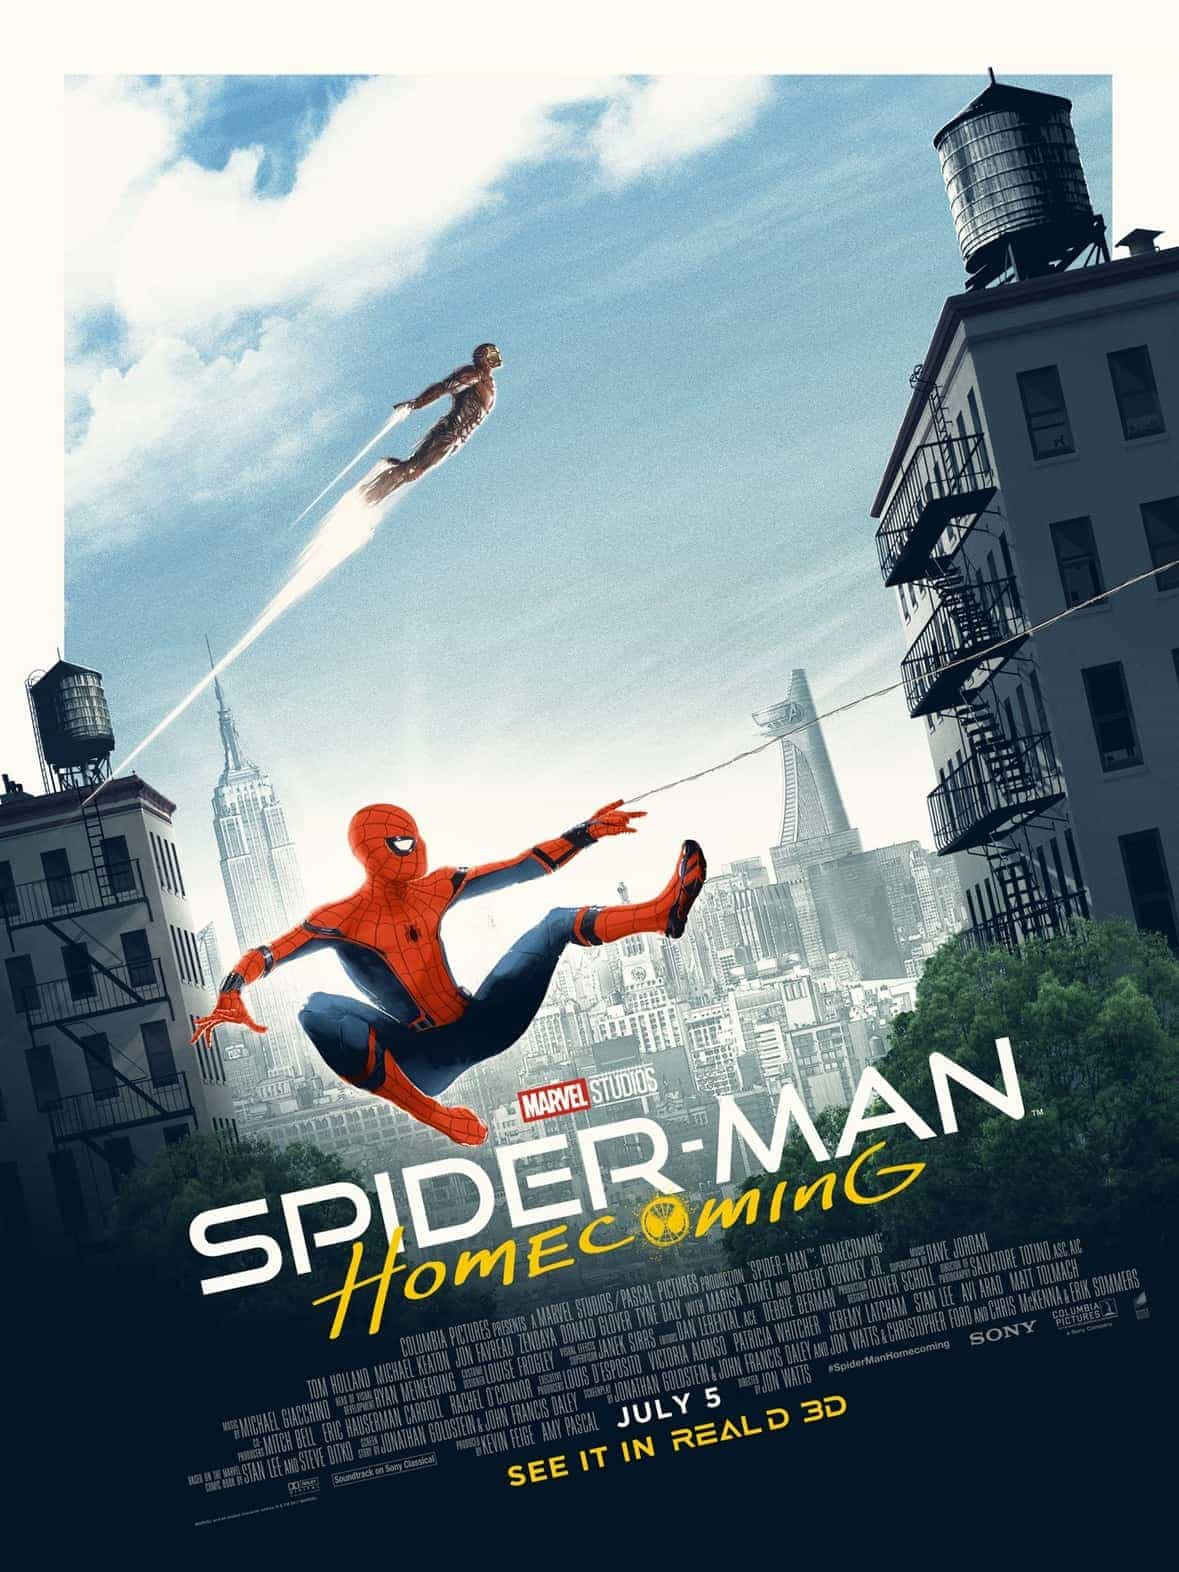 Spider-Man Homecoming gets a UK 12A certificate